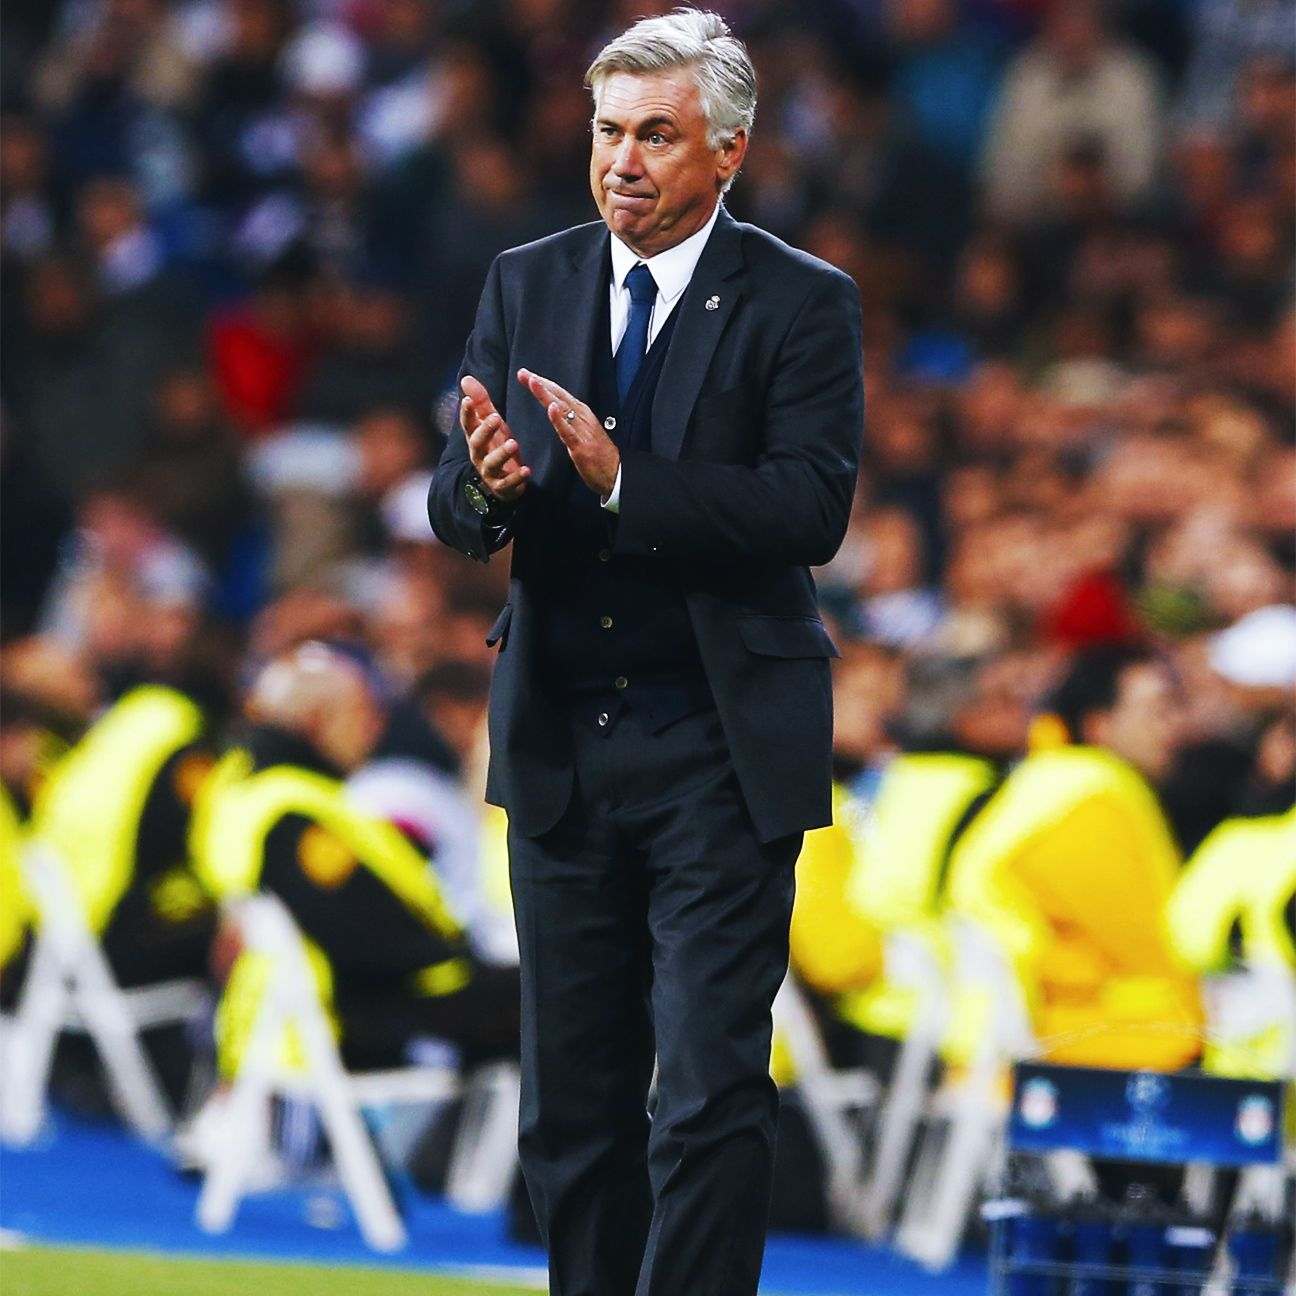 Carlo Ancelotti already knows that a tough task awaits his Real side in Vigo on Sunday.